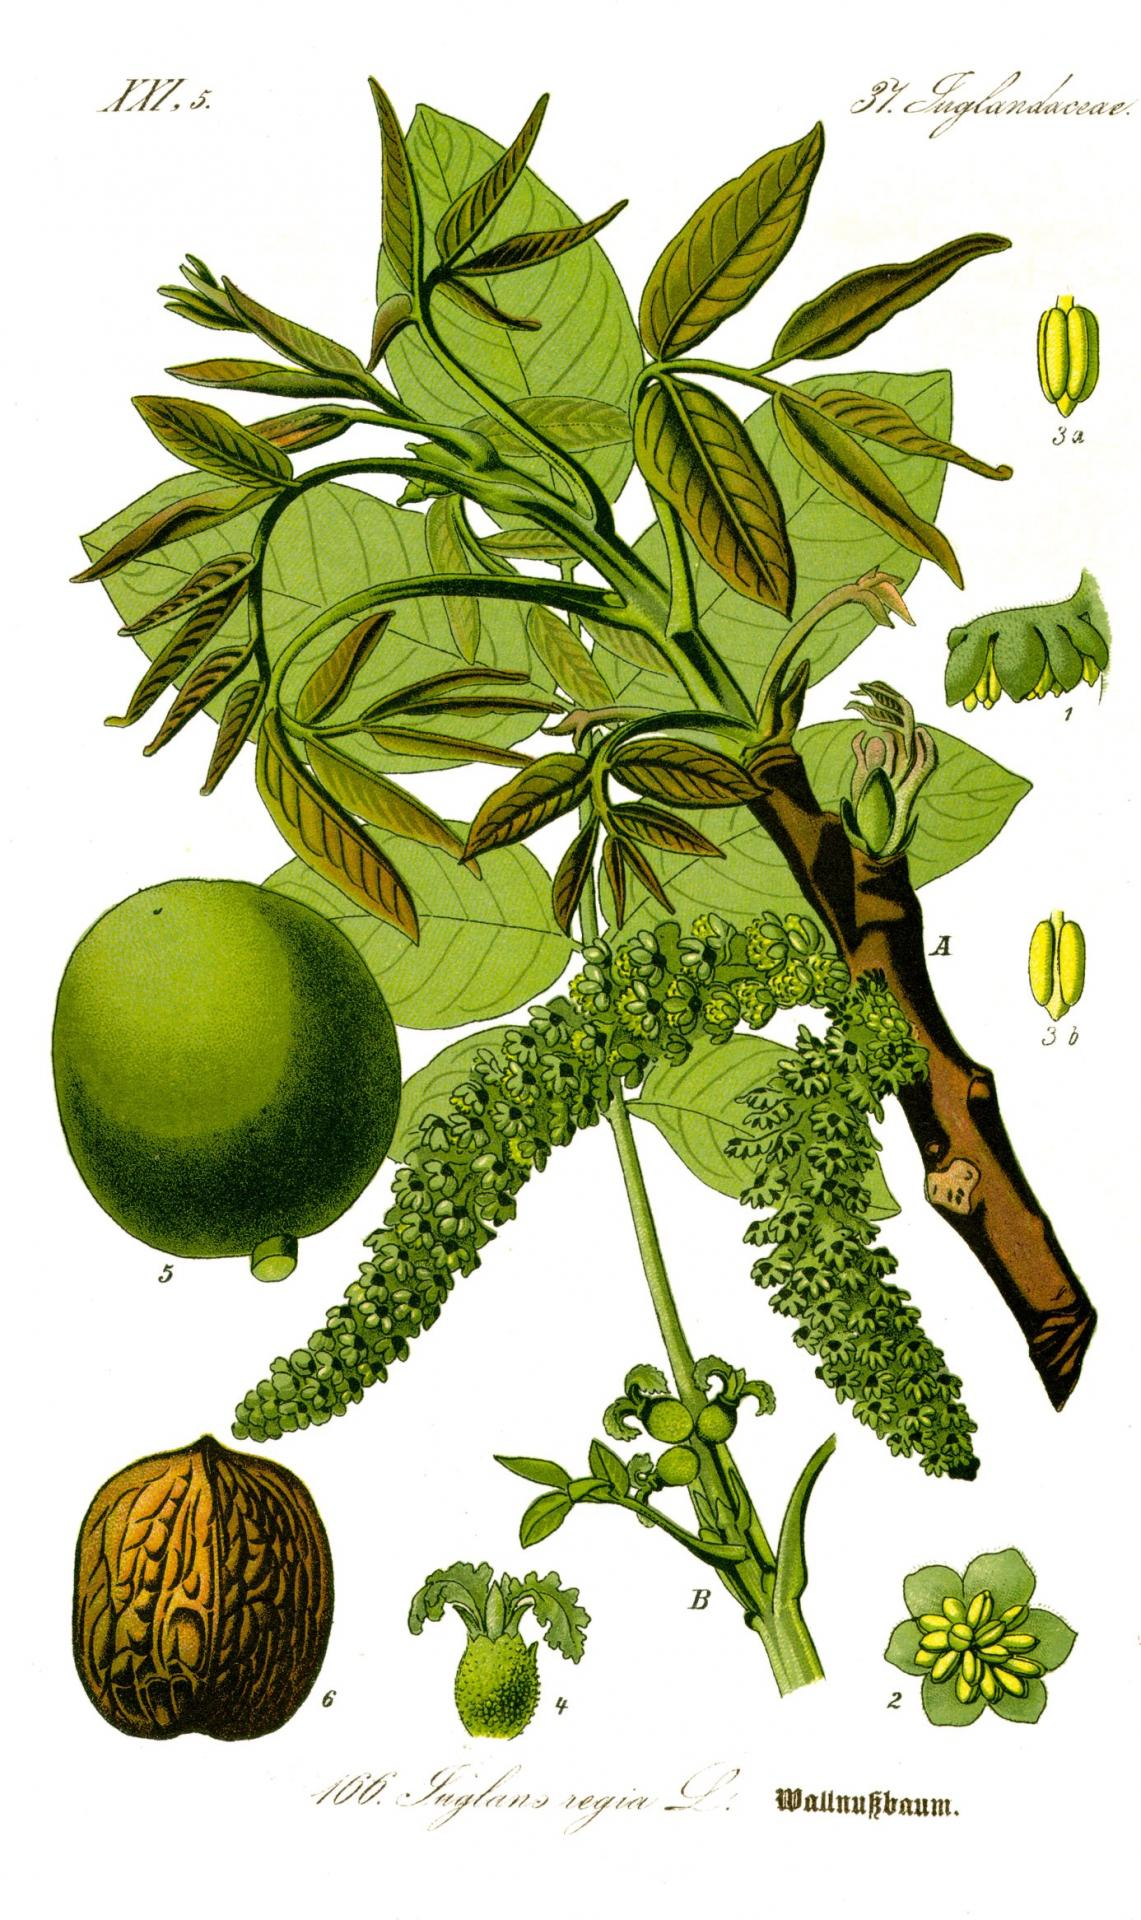 Illustration juglans regia